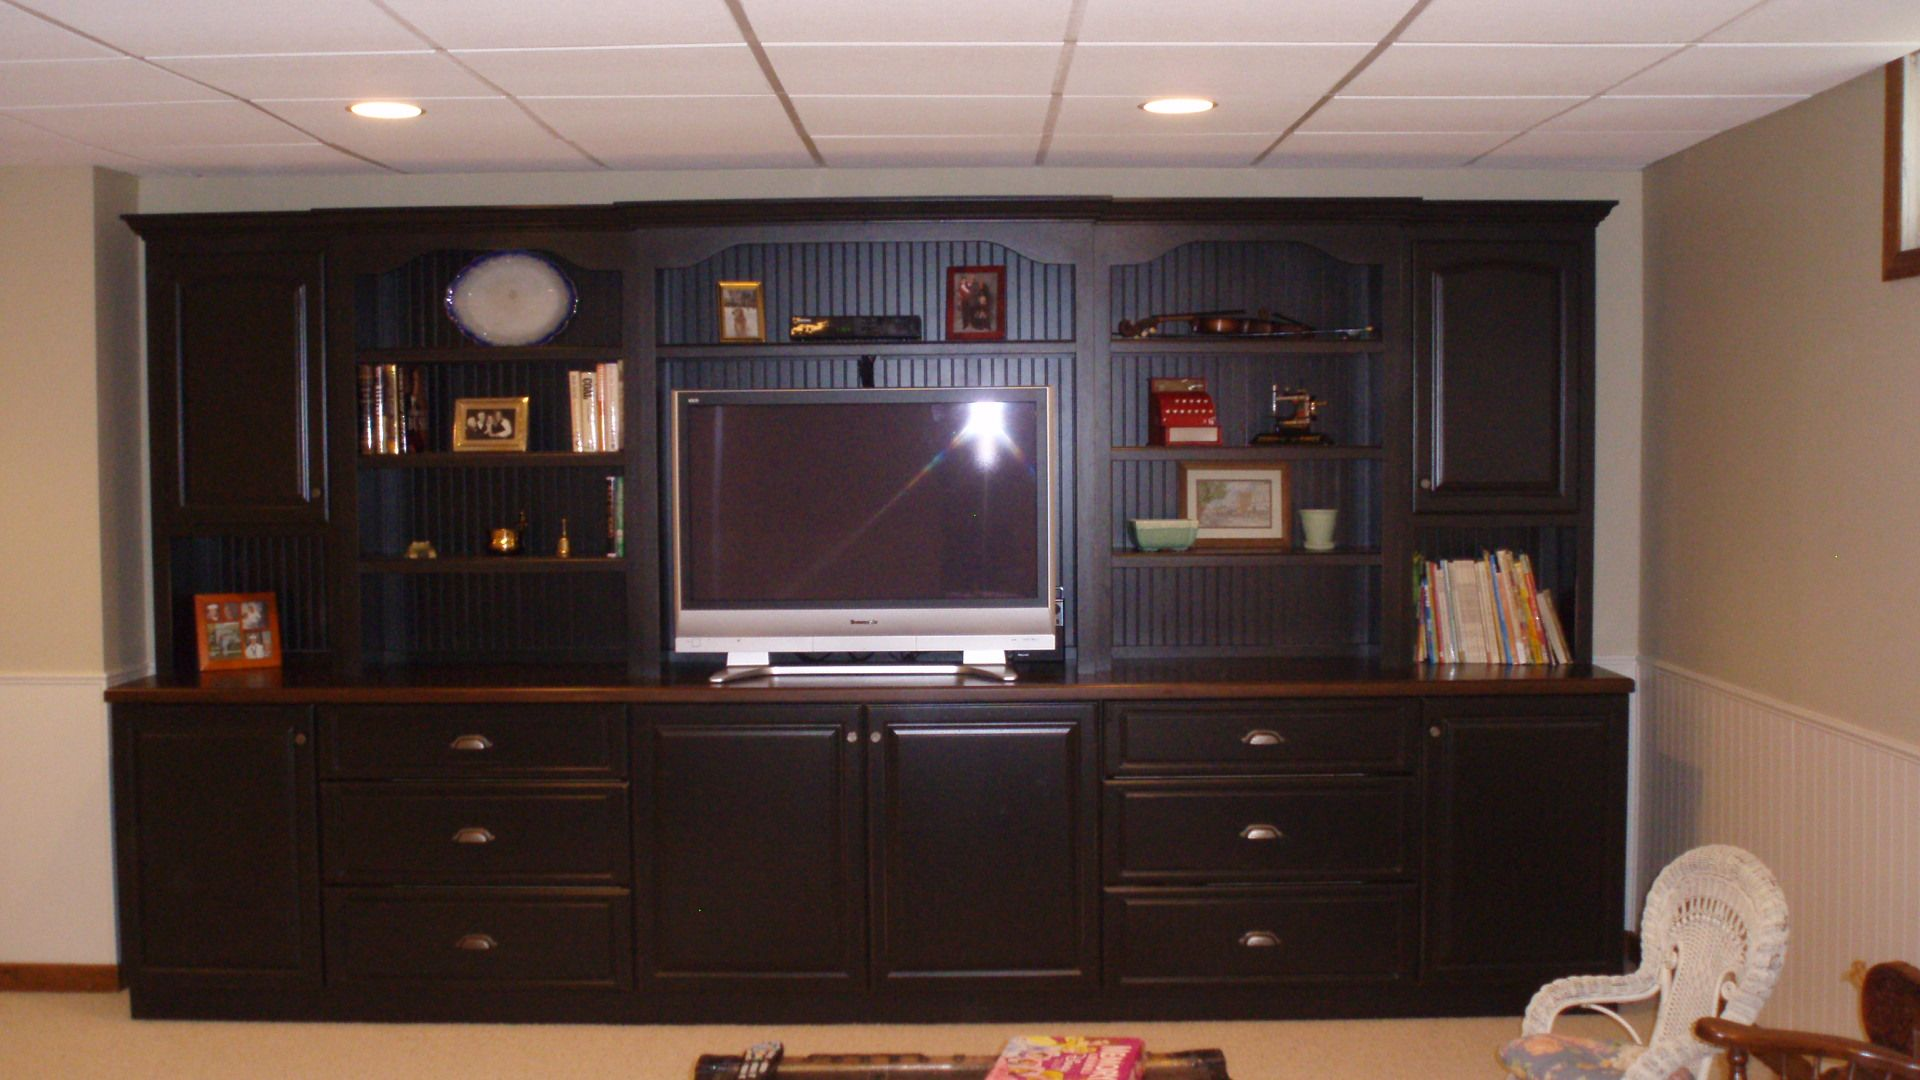 wall unit cabinets   Previous post CUSTOM BUILT CHERRY WALL UNIT ...